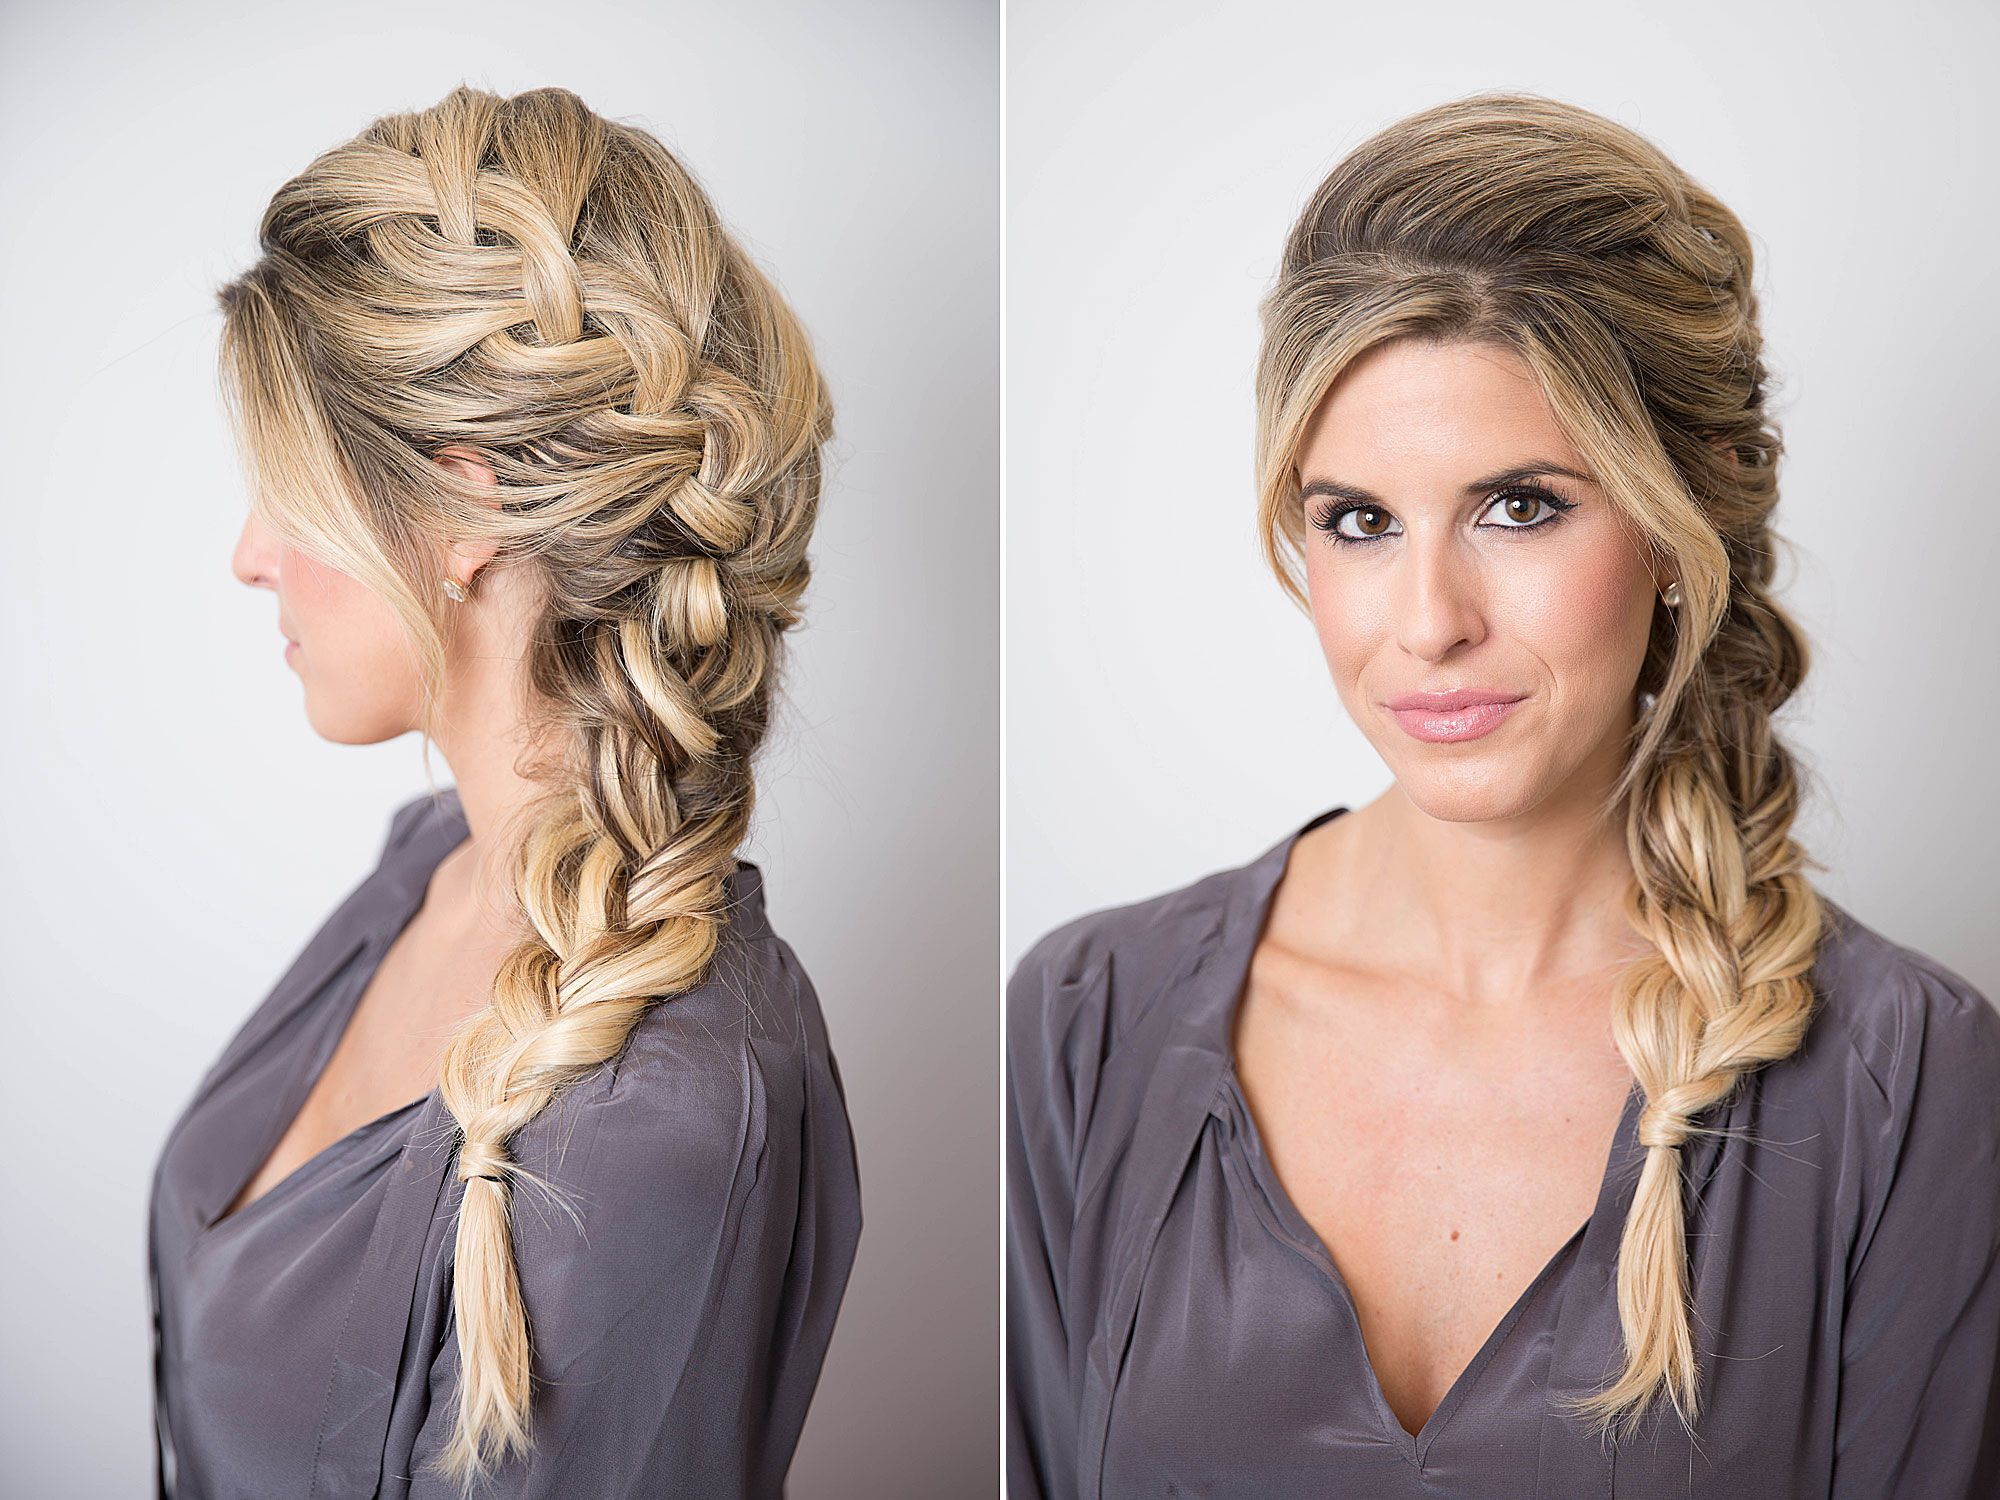 Haircut Styles for Long Hair: The Braid of Lobster Tail